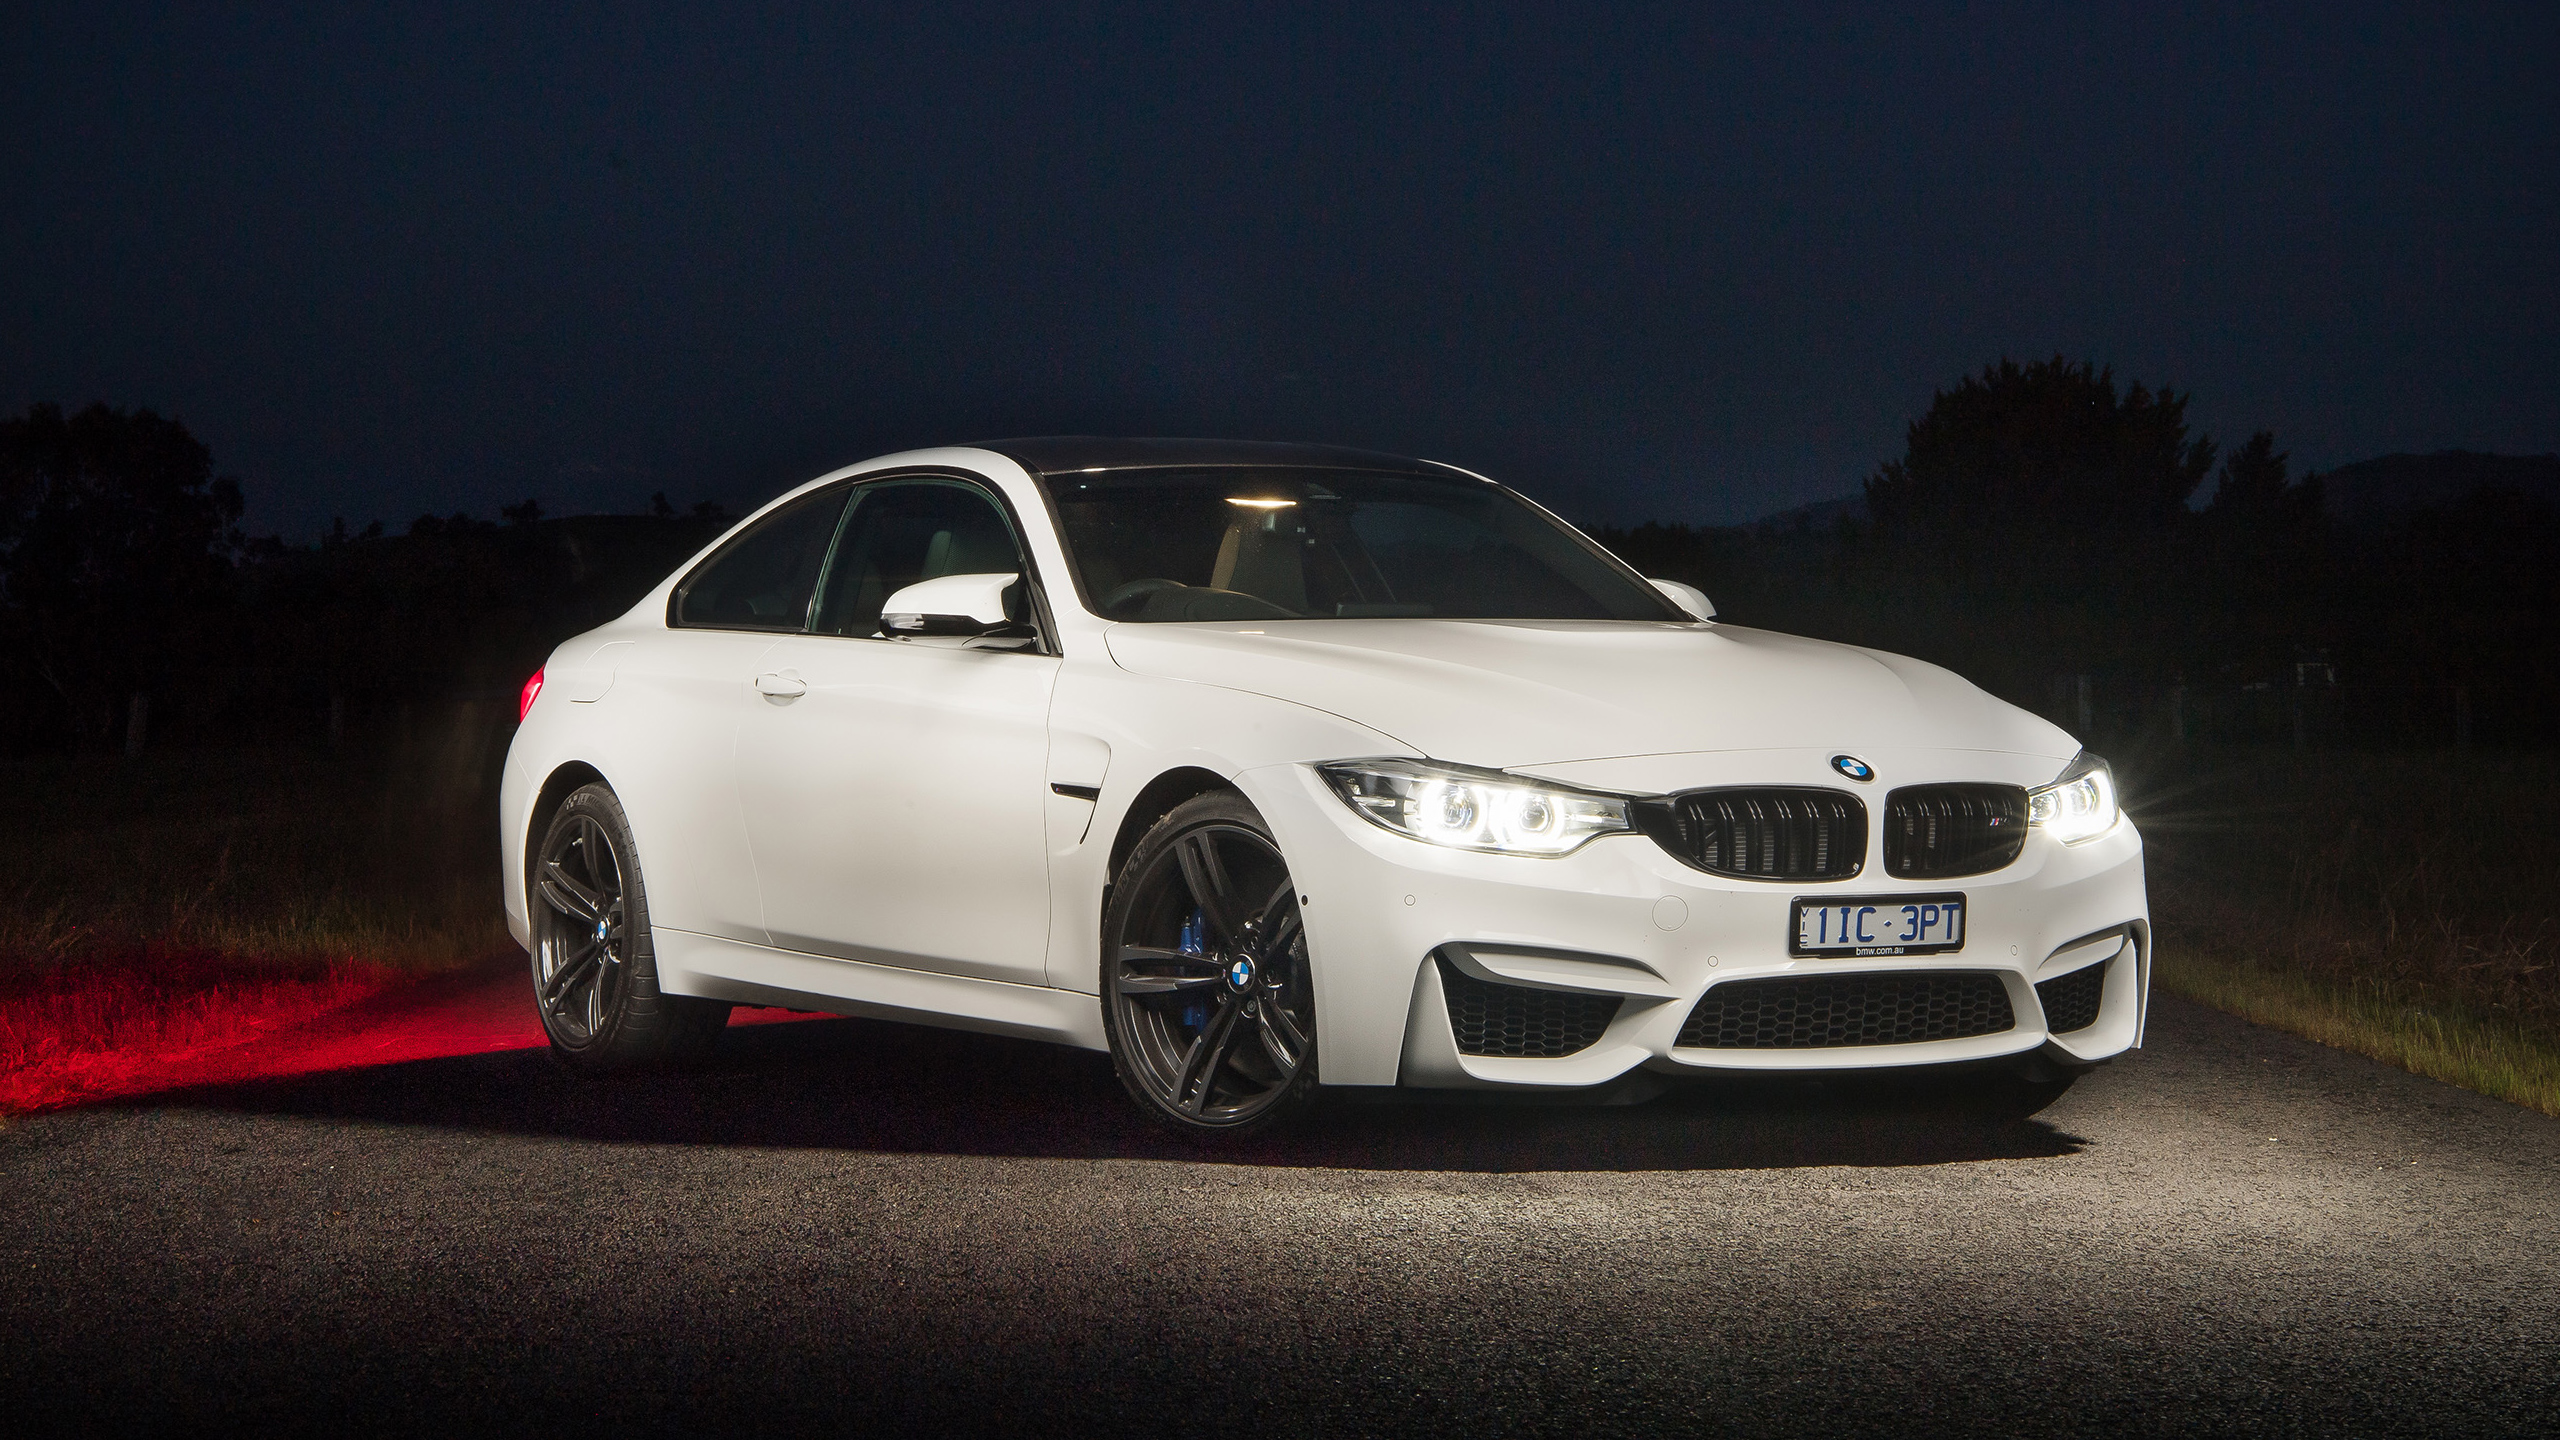 2560x1440 - BMW M4 Wallpapers 5